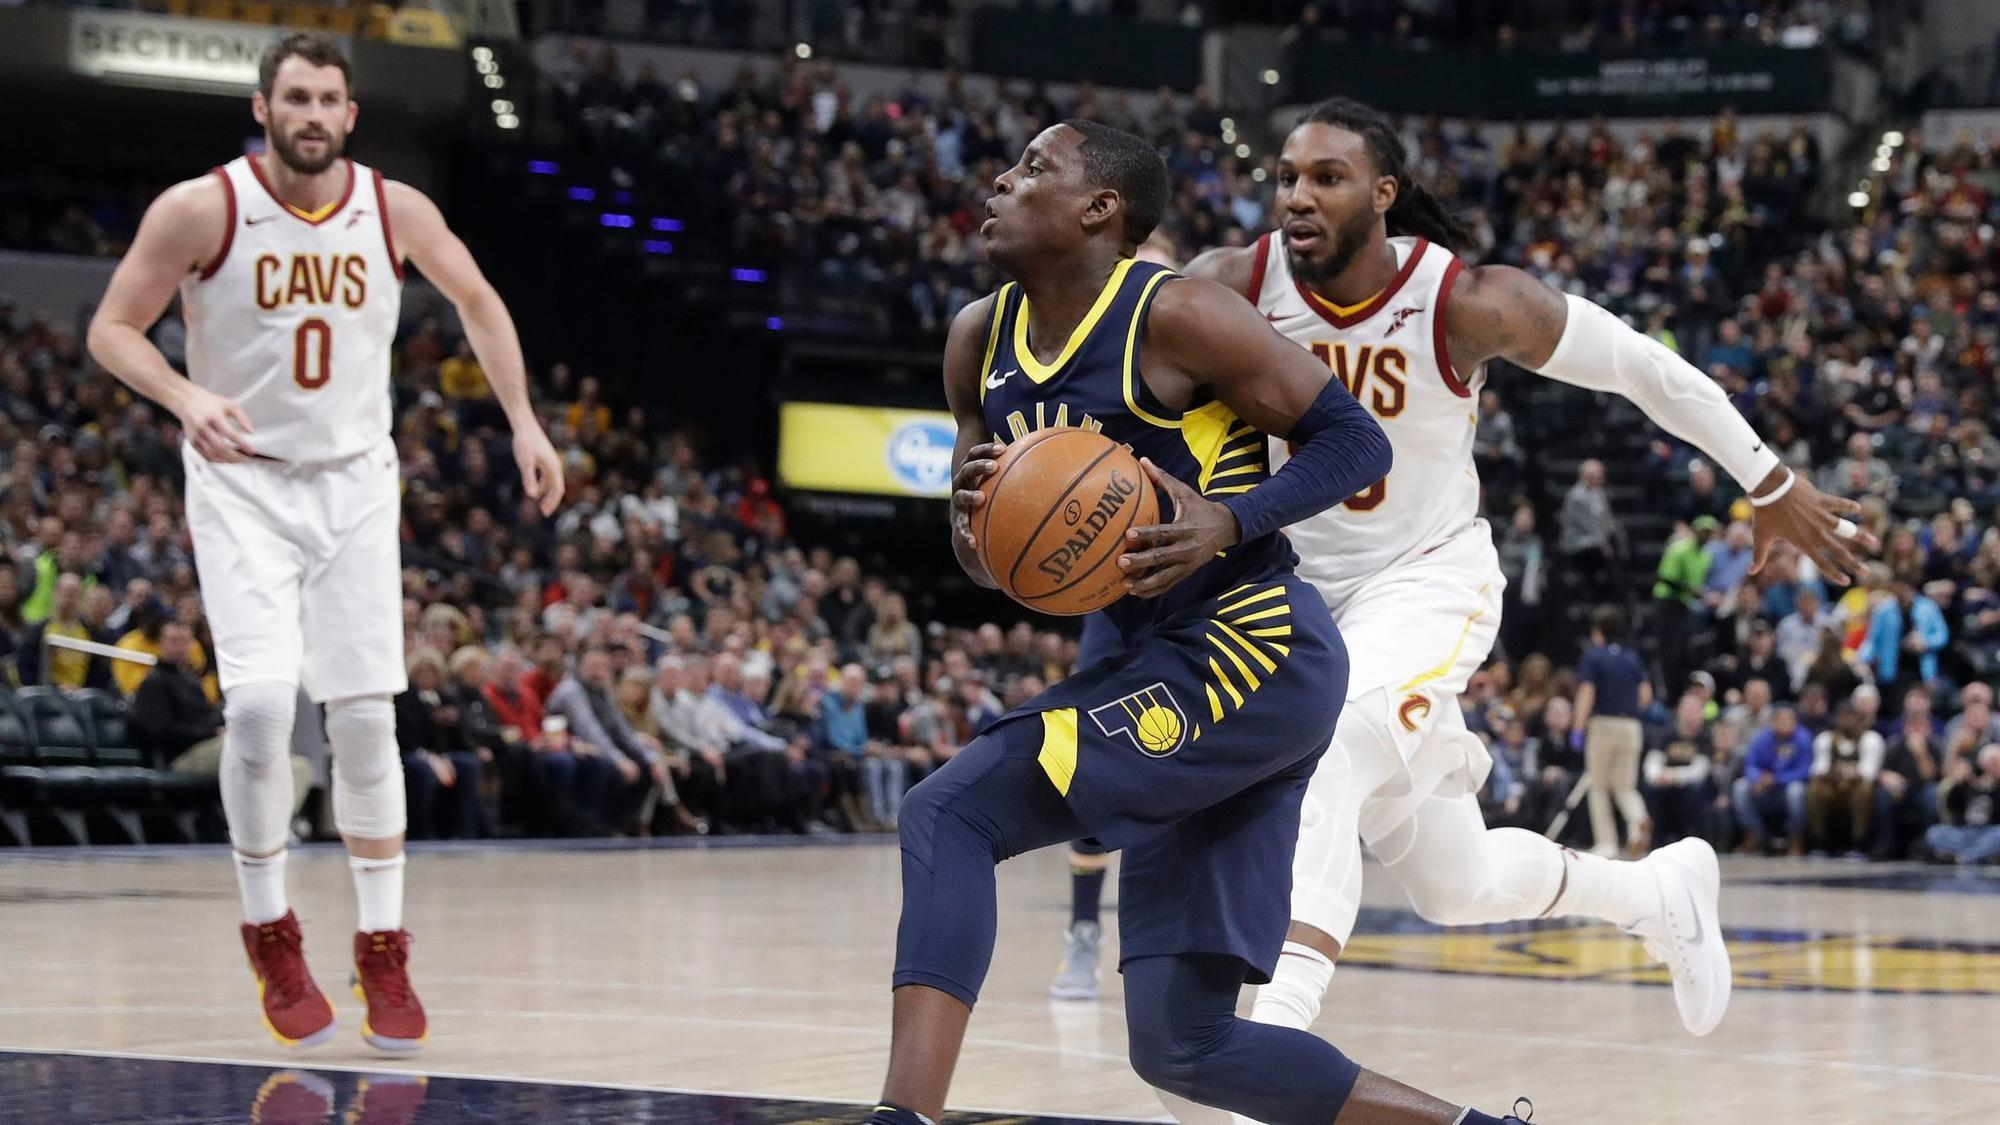 NBA roundup: Pacers come from 22 down to hand Cavaliers third consecutive loss